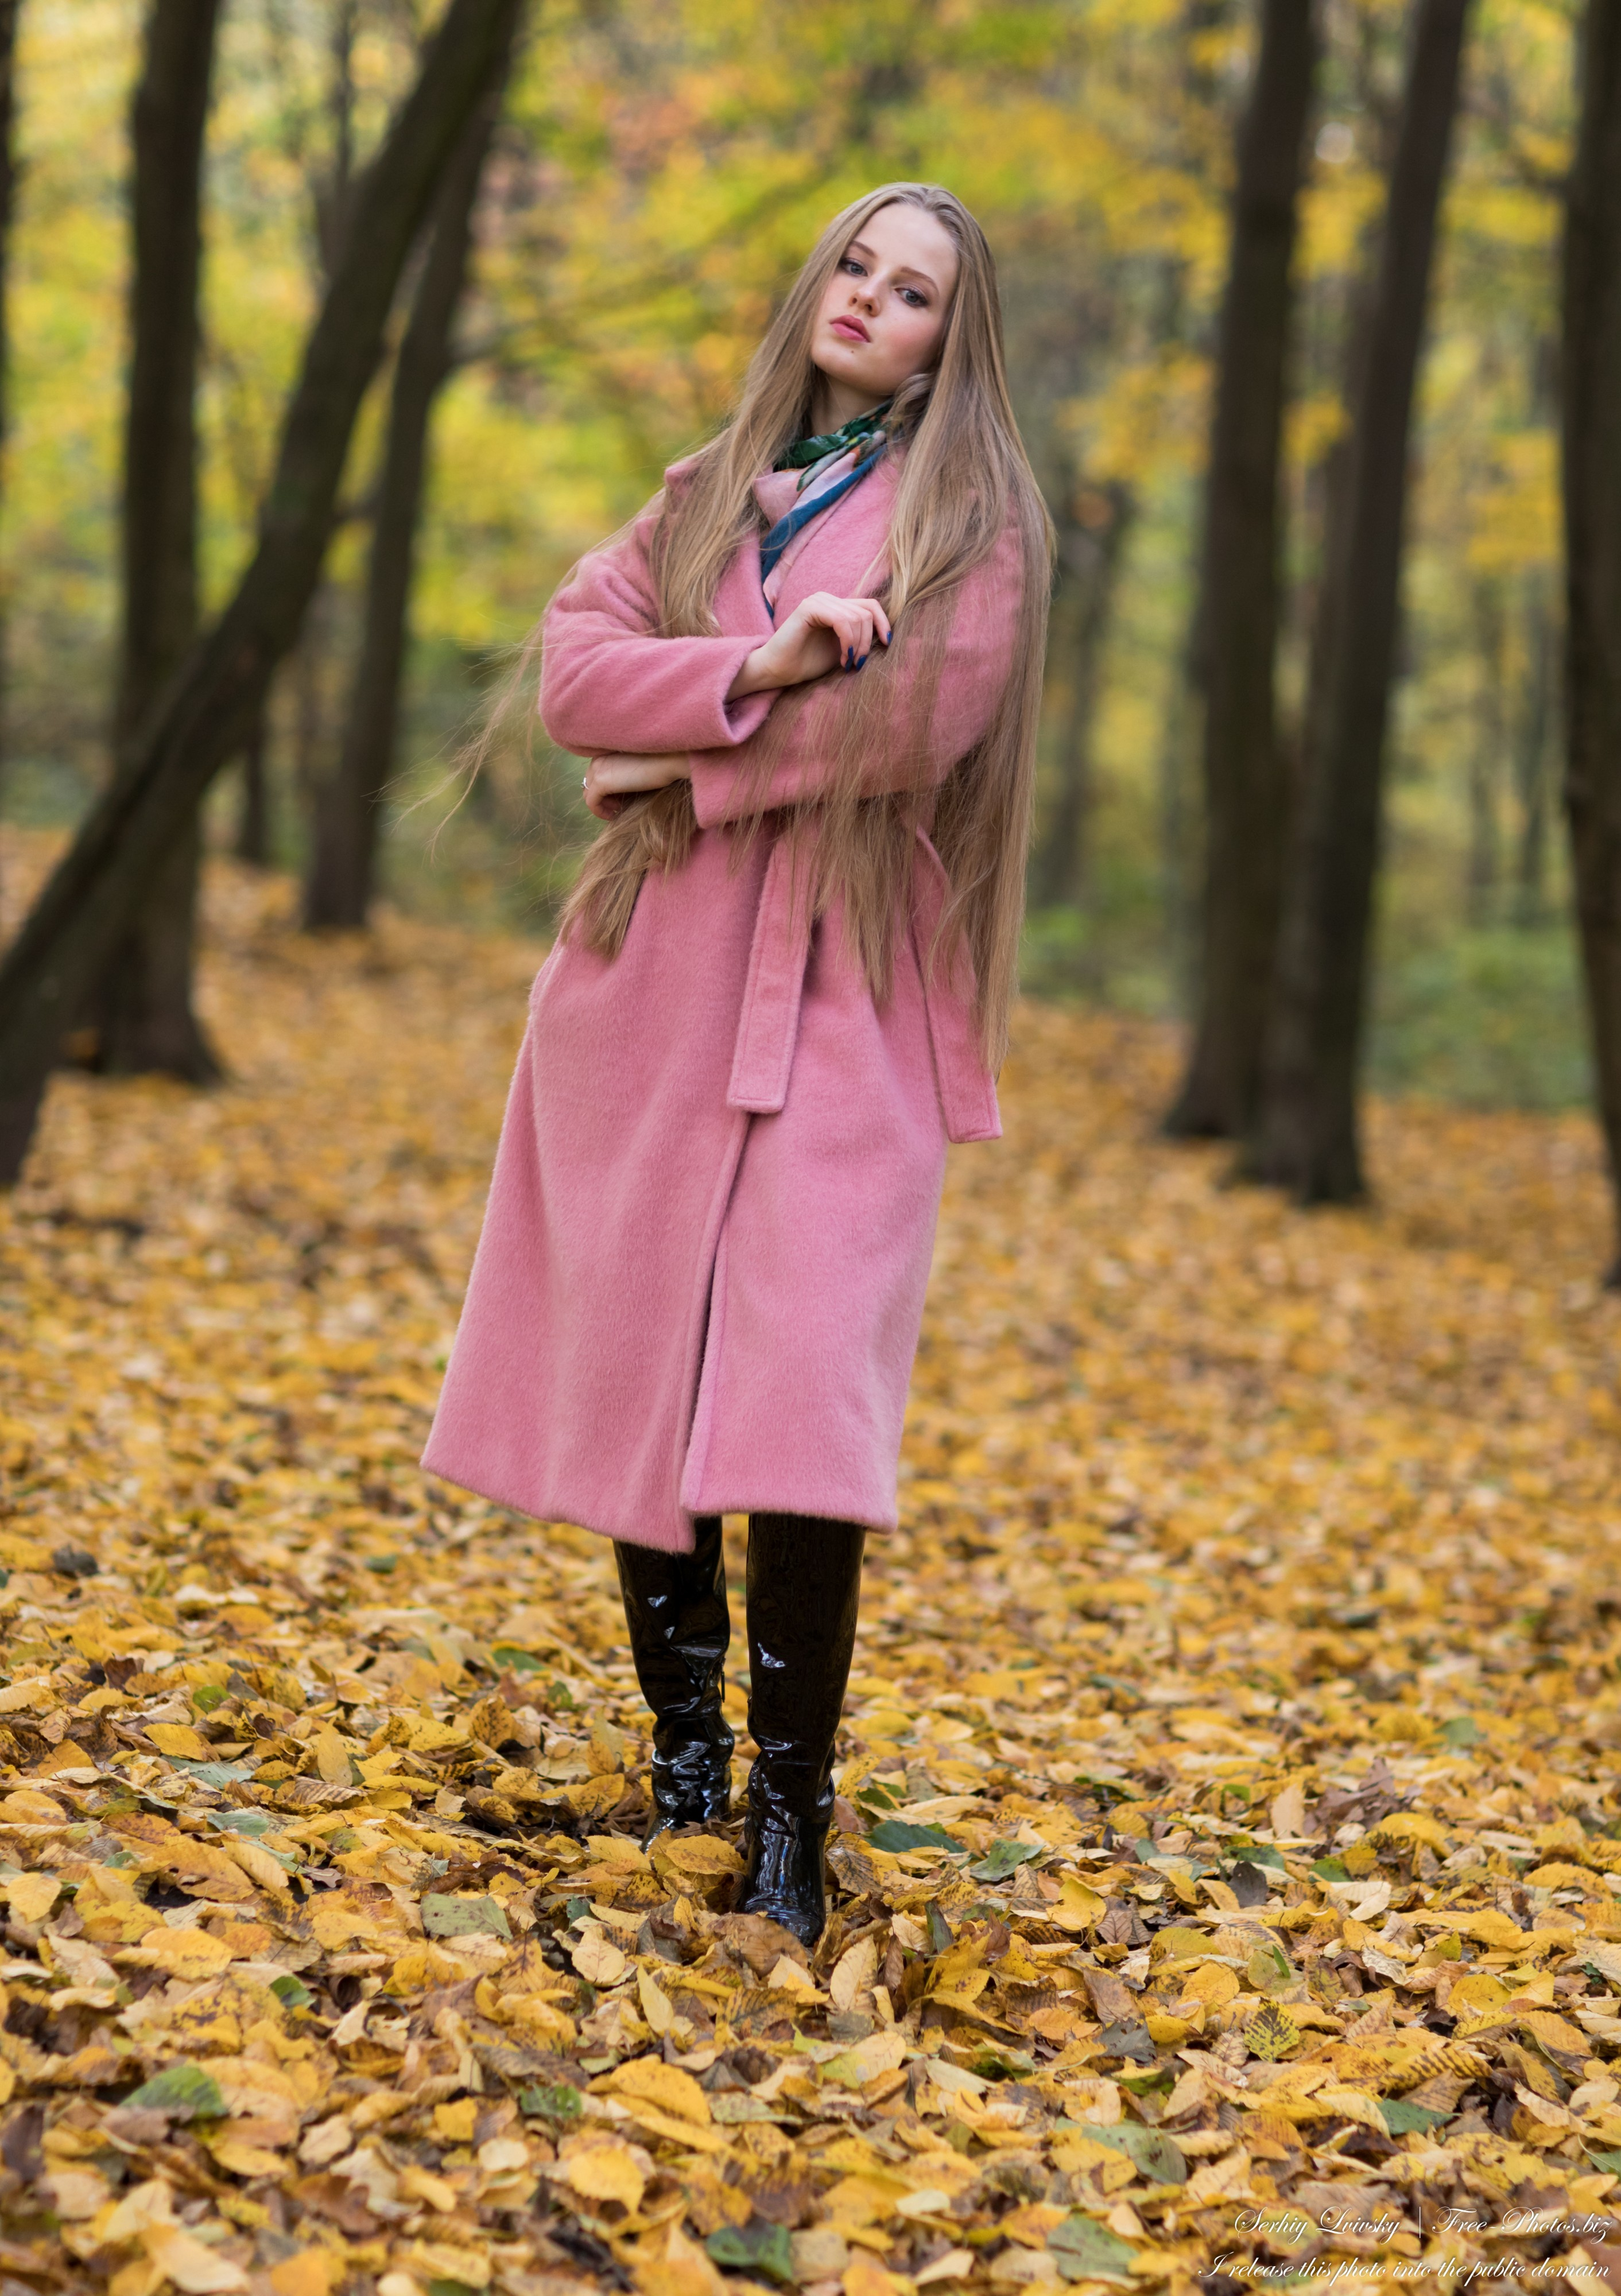 Diana  - an 18-year-old natural blonde girl photographed in October 2020 by Serhiy Lvivsky, picture 23